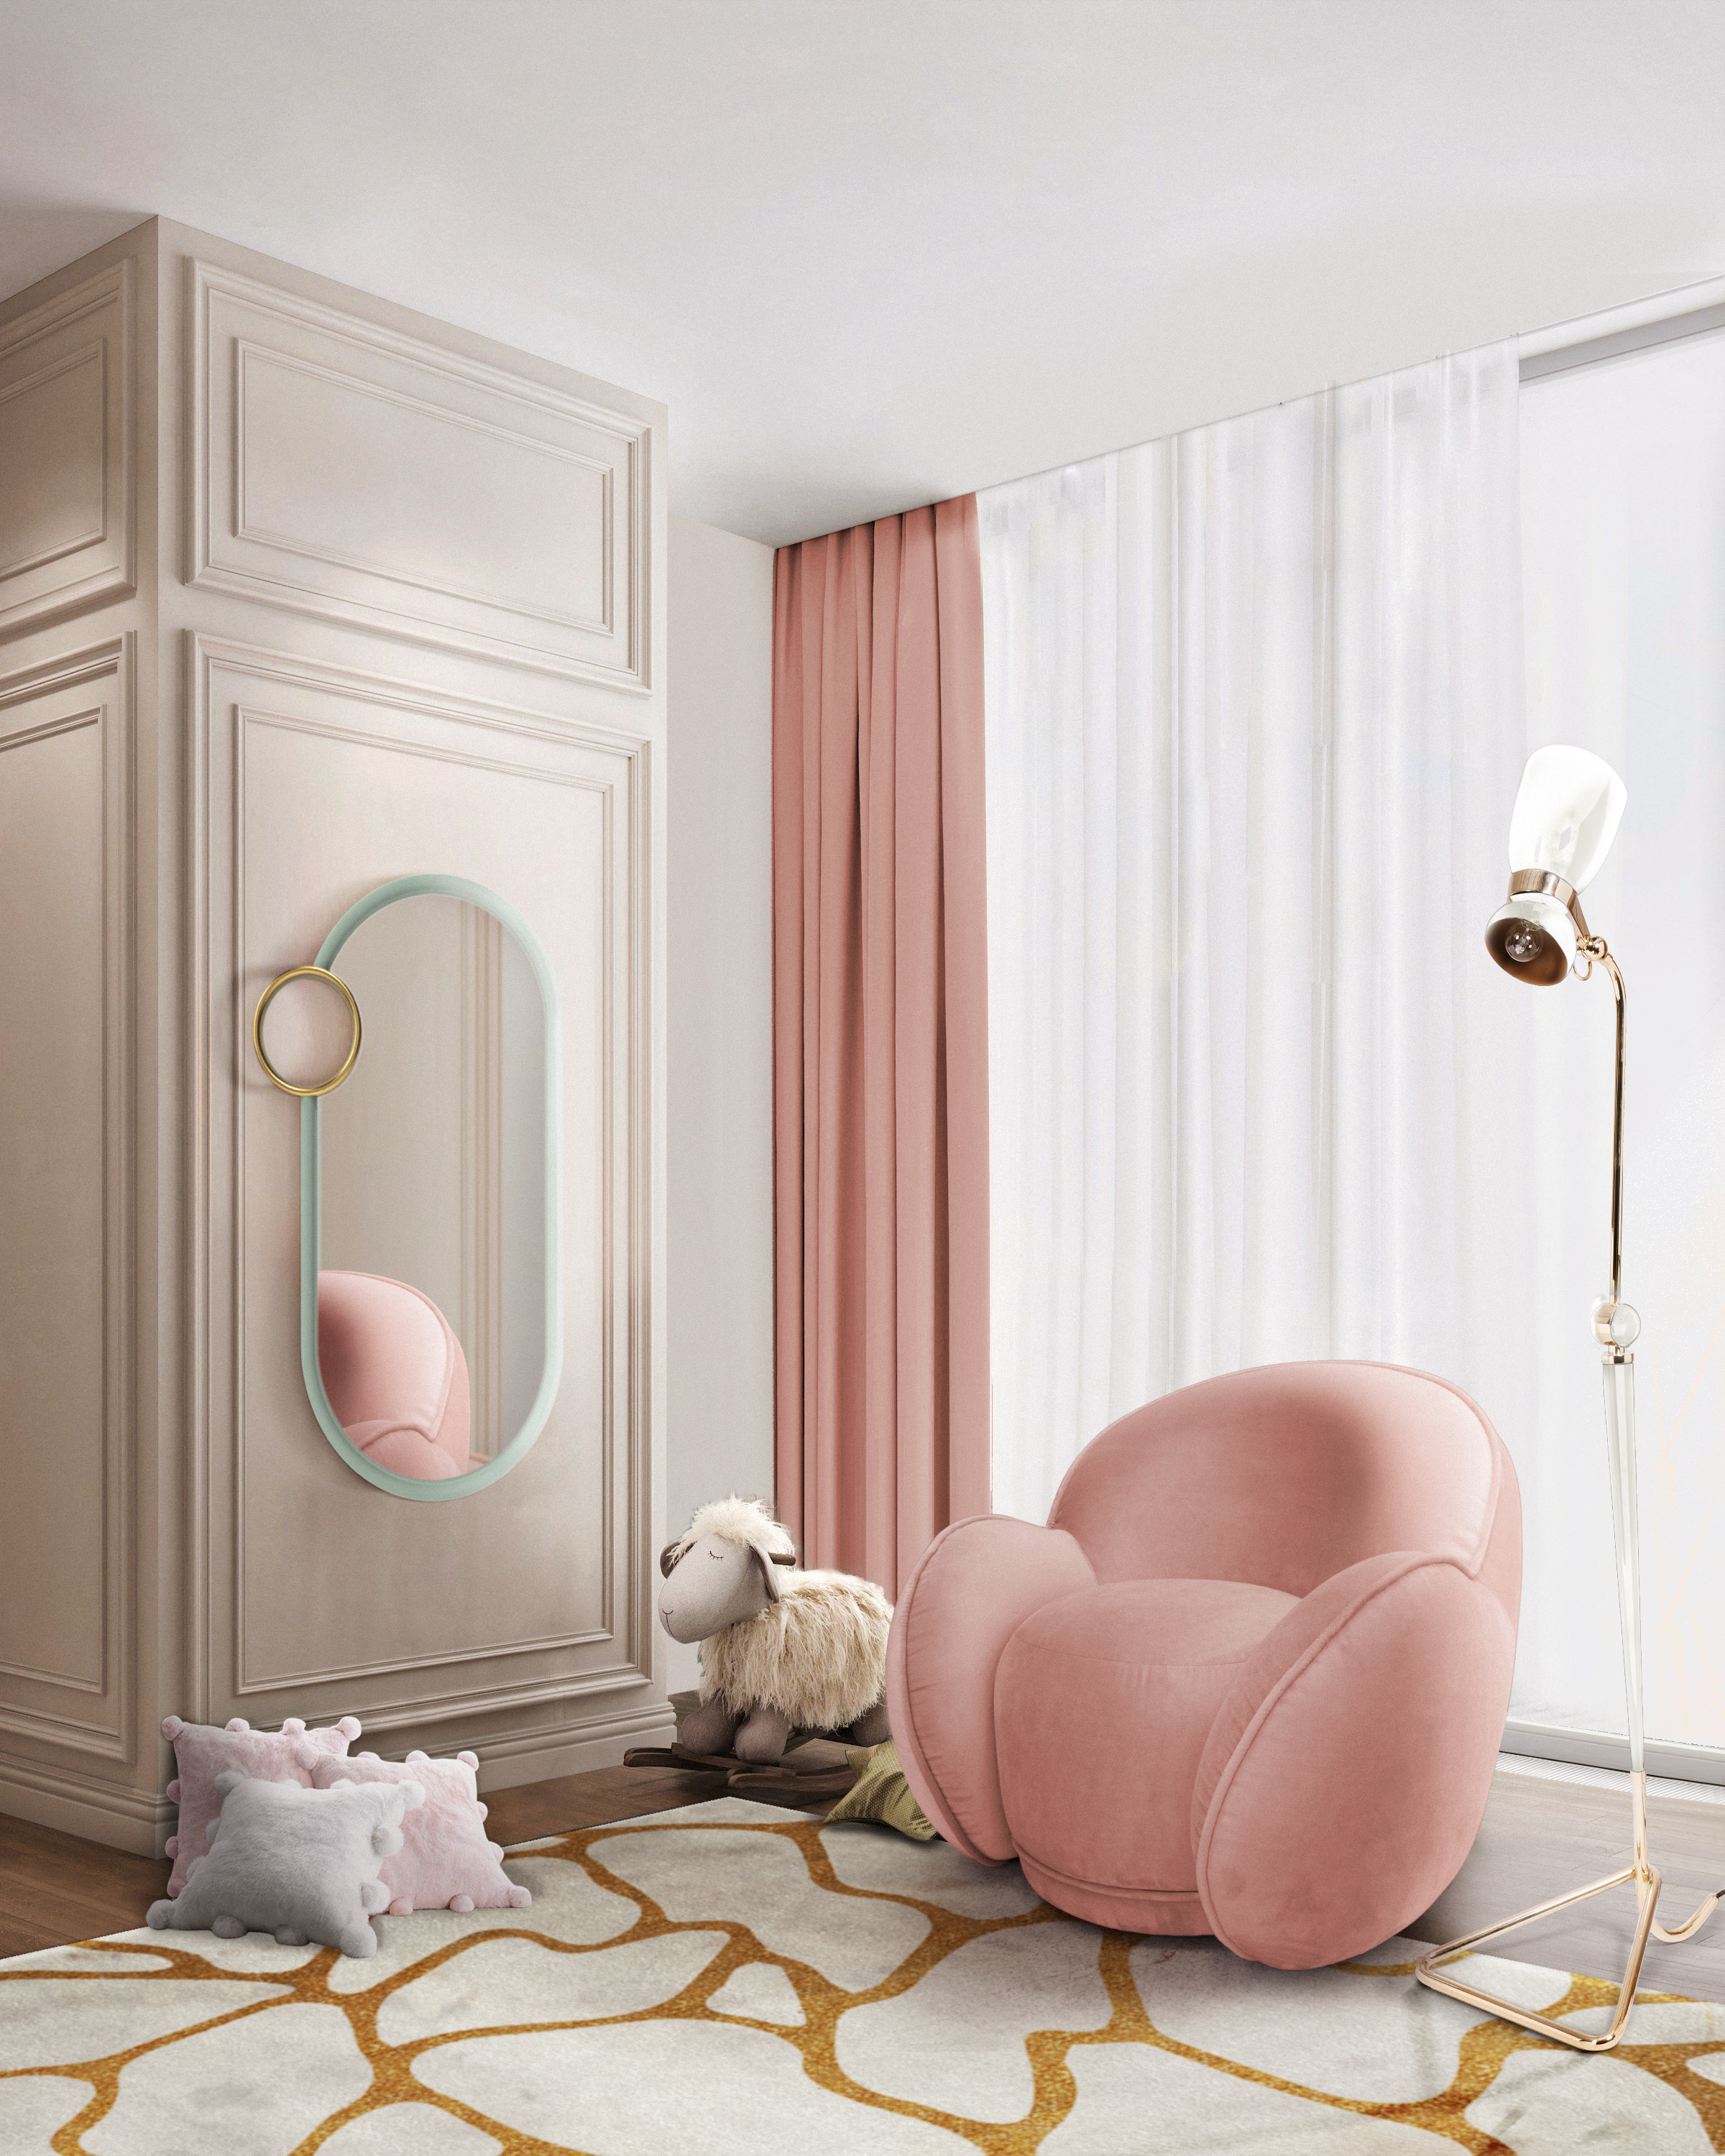 be inspired Be Inspired By These Wonderful Ambiances For Your Kid´s Bedroom Be Inspired By These Wonderful Ambiances For Your Kid  s Bedroom10